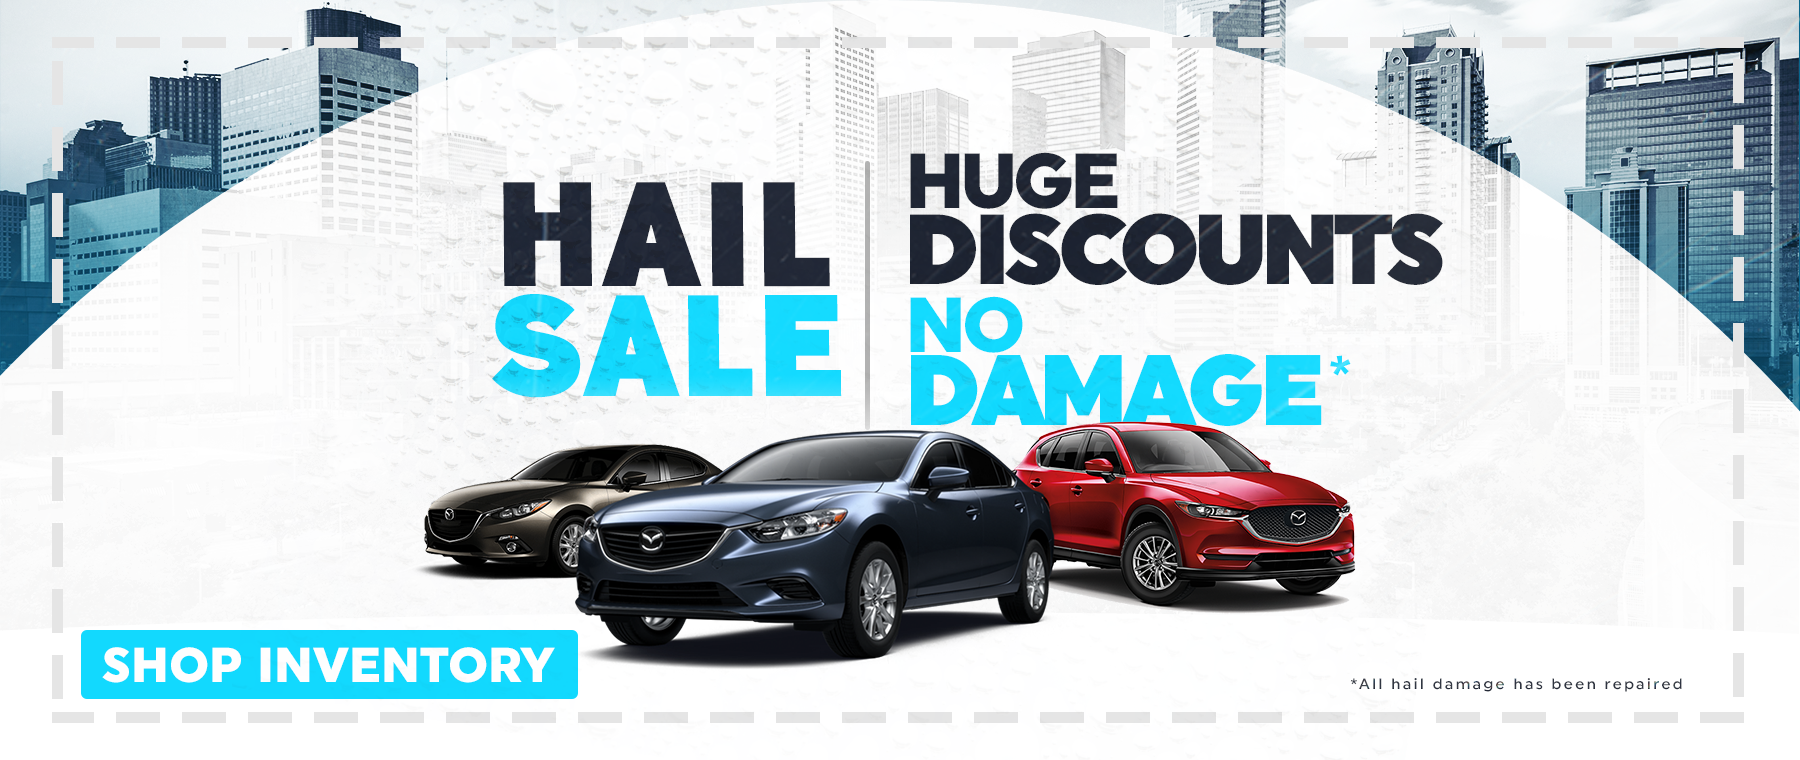 Hail Sale at Jeff Haas Mazda